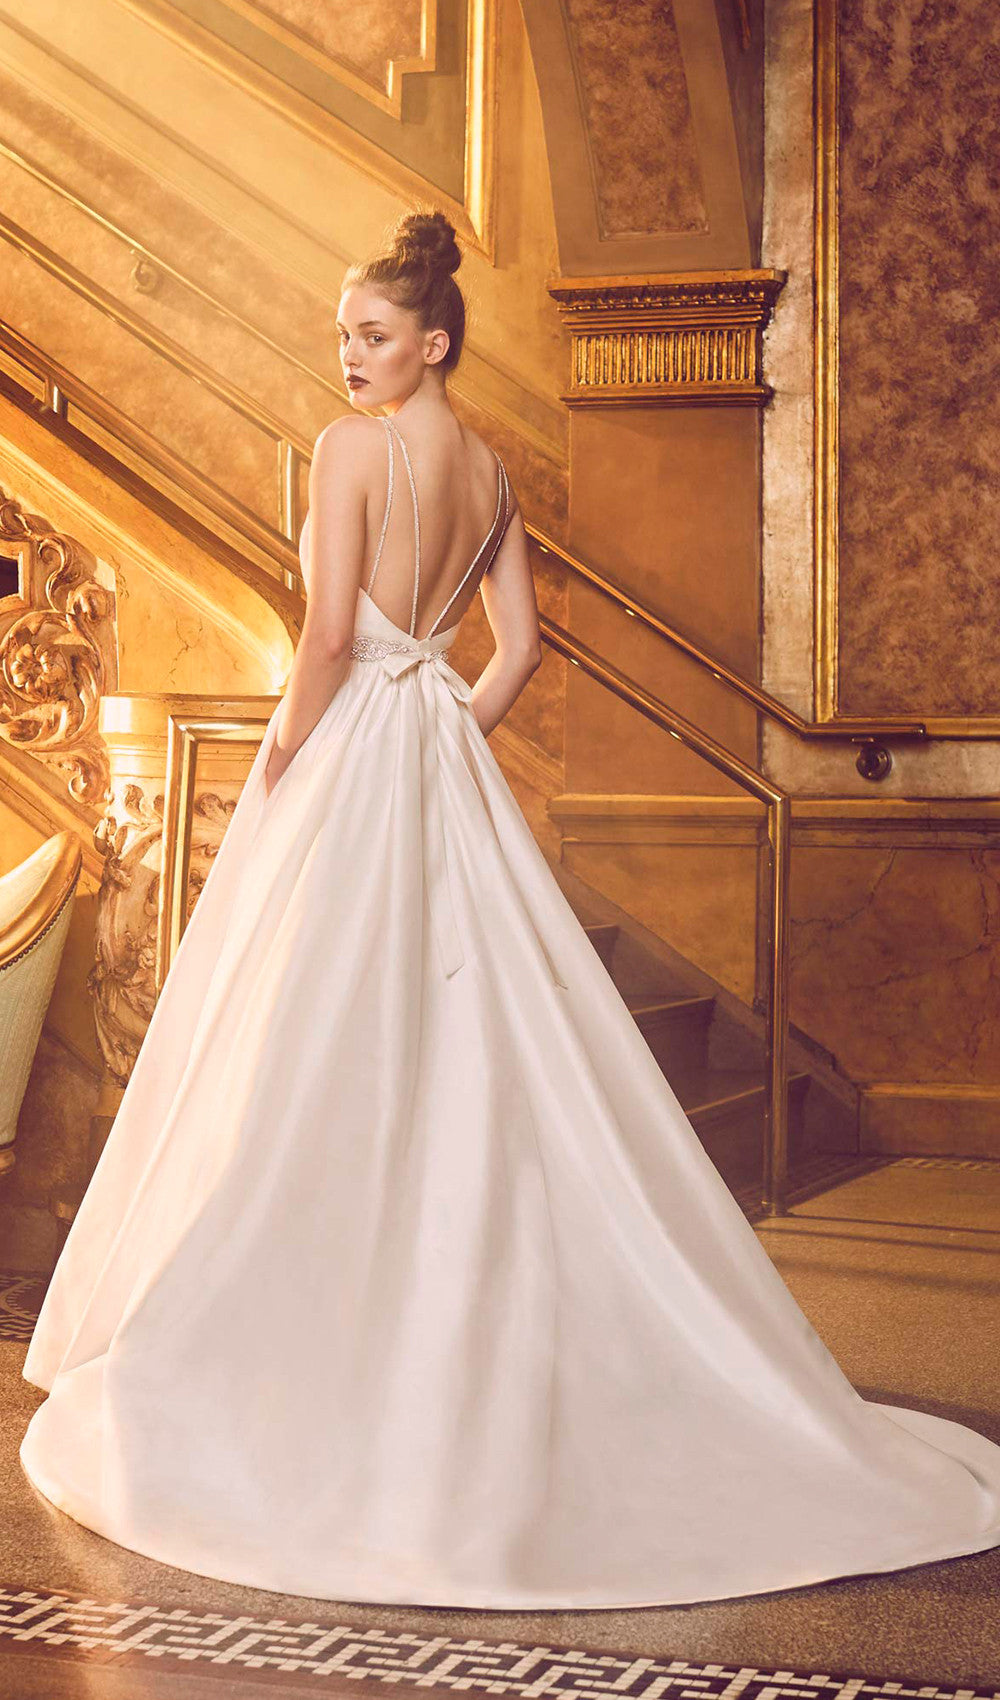 Paloma Blanca - STYLE 4719 | Schaffer's Bridal in Des Moines, Iowa and Scottsdale, Arizona